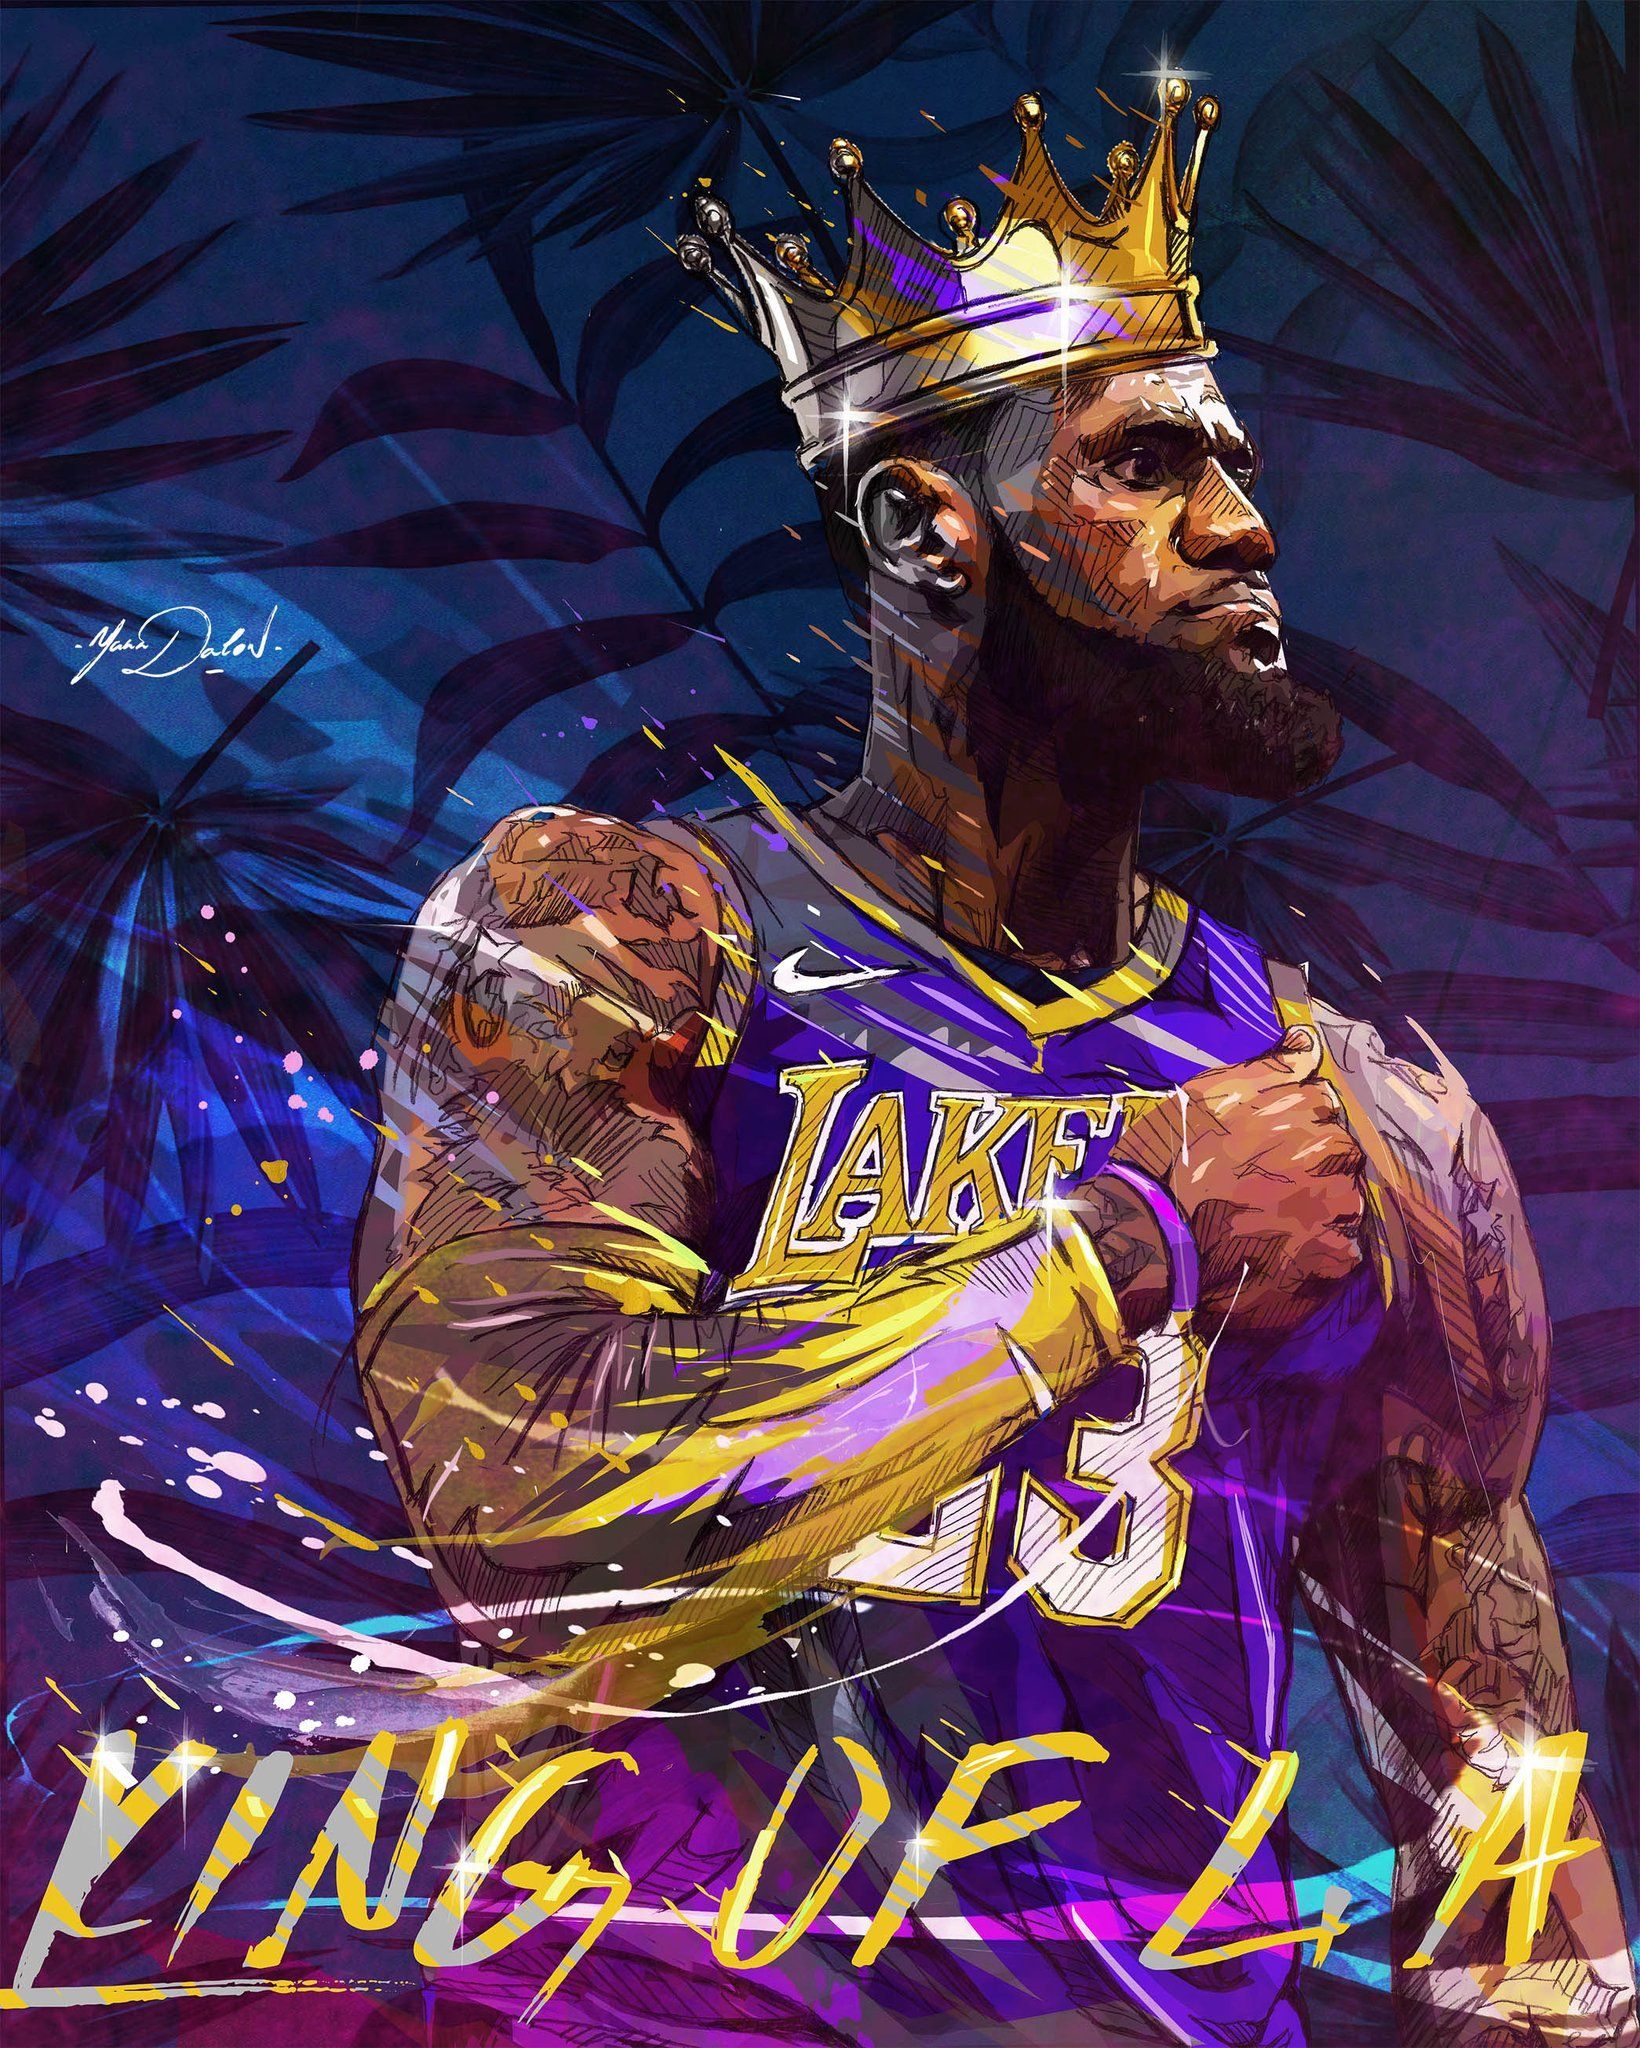 LeBron Lakers Wallpapers - Top Free